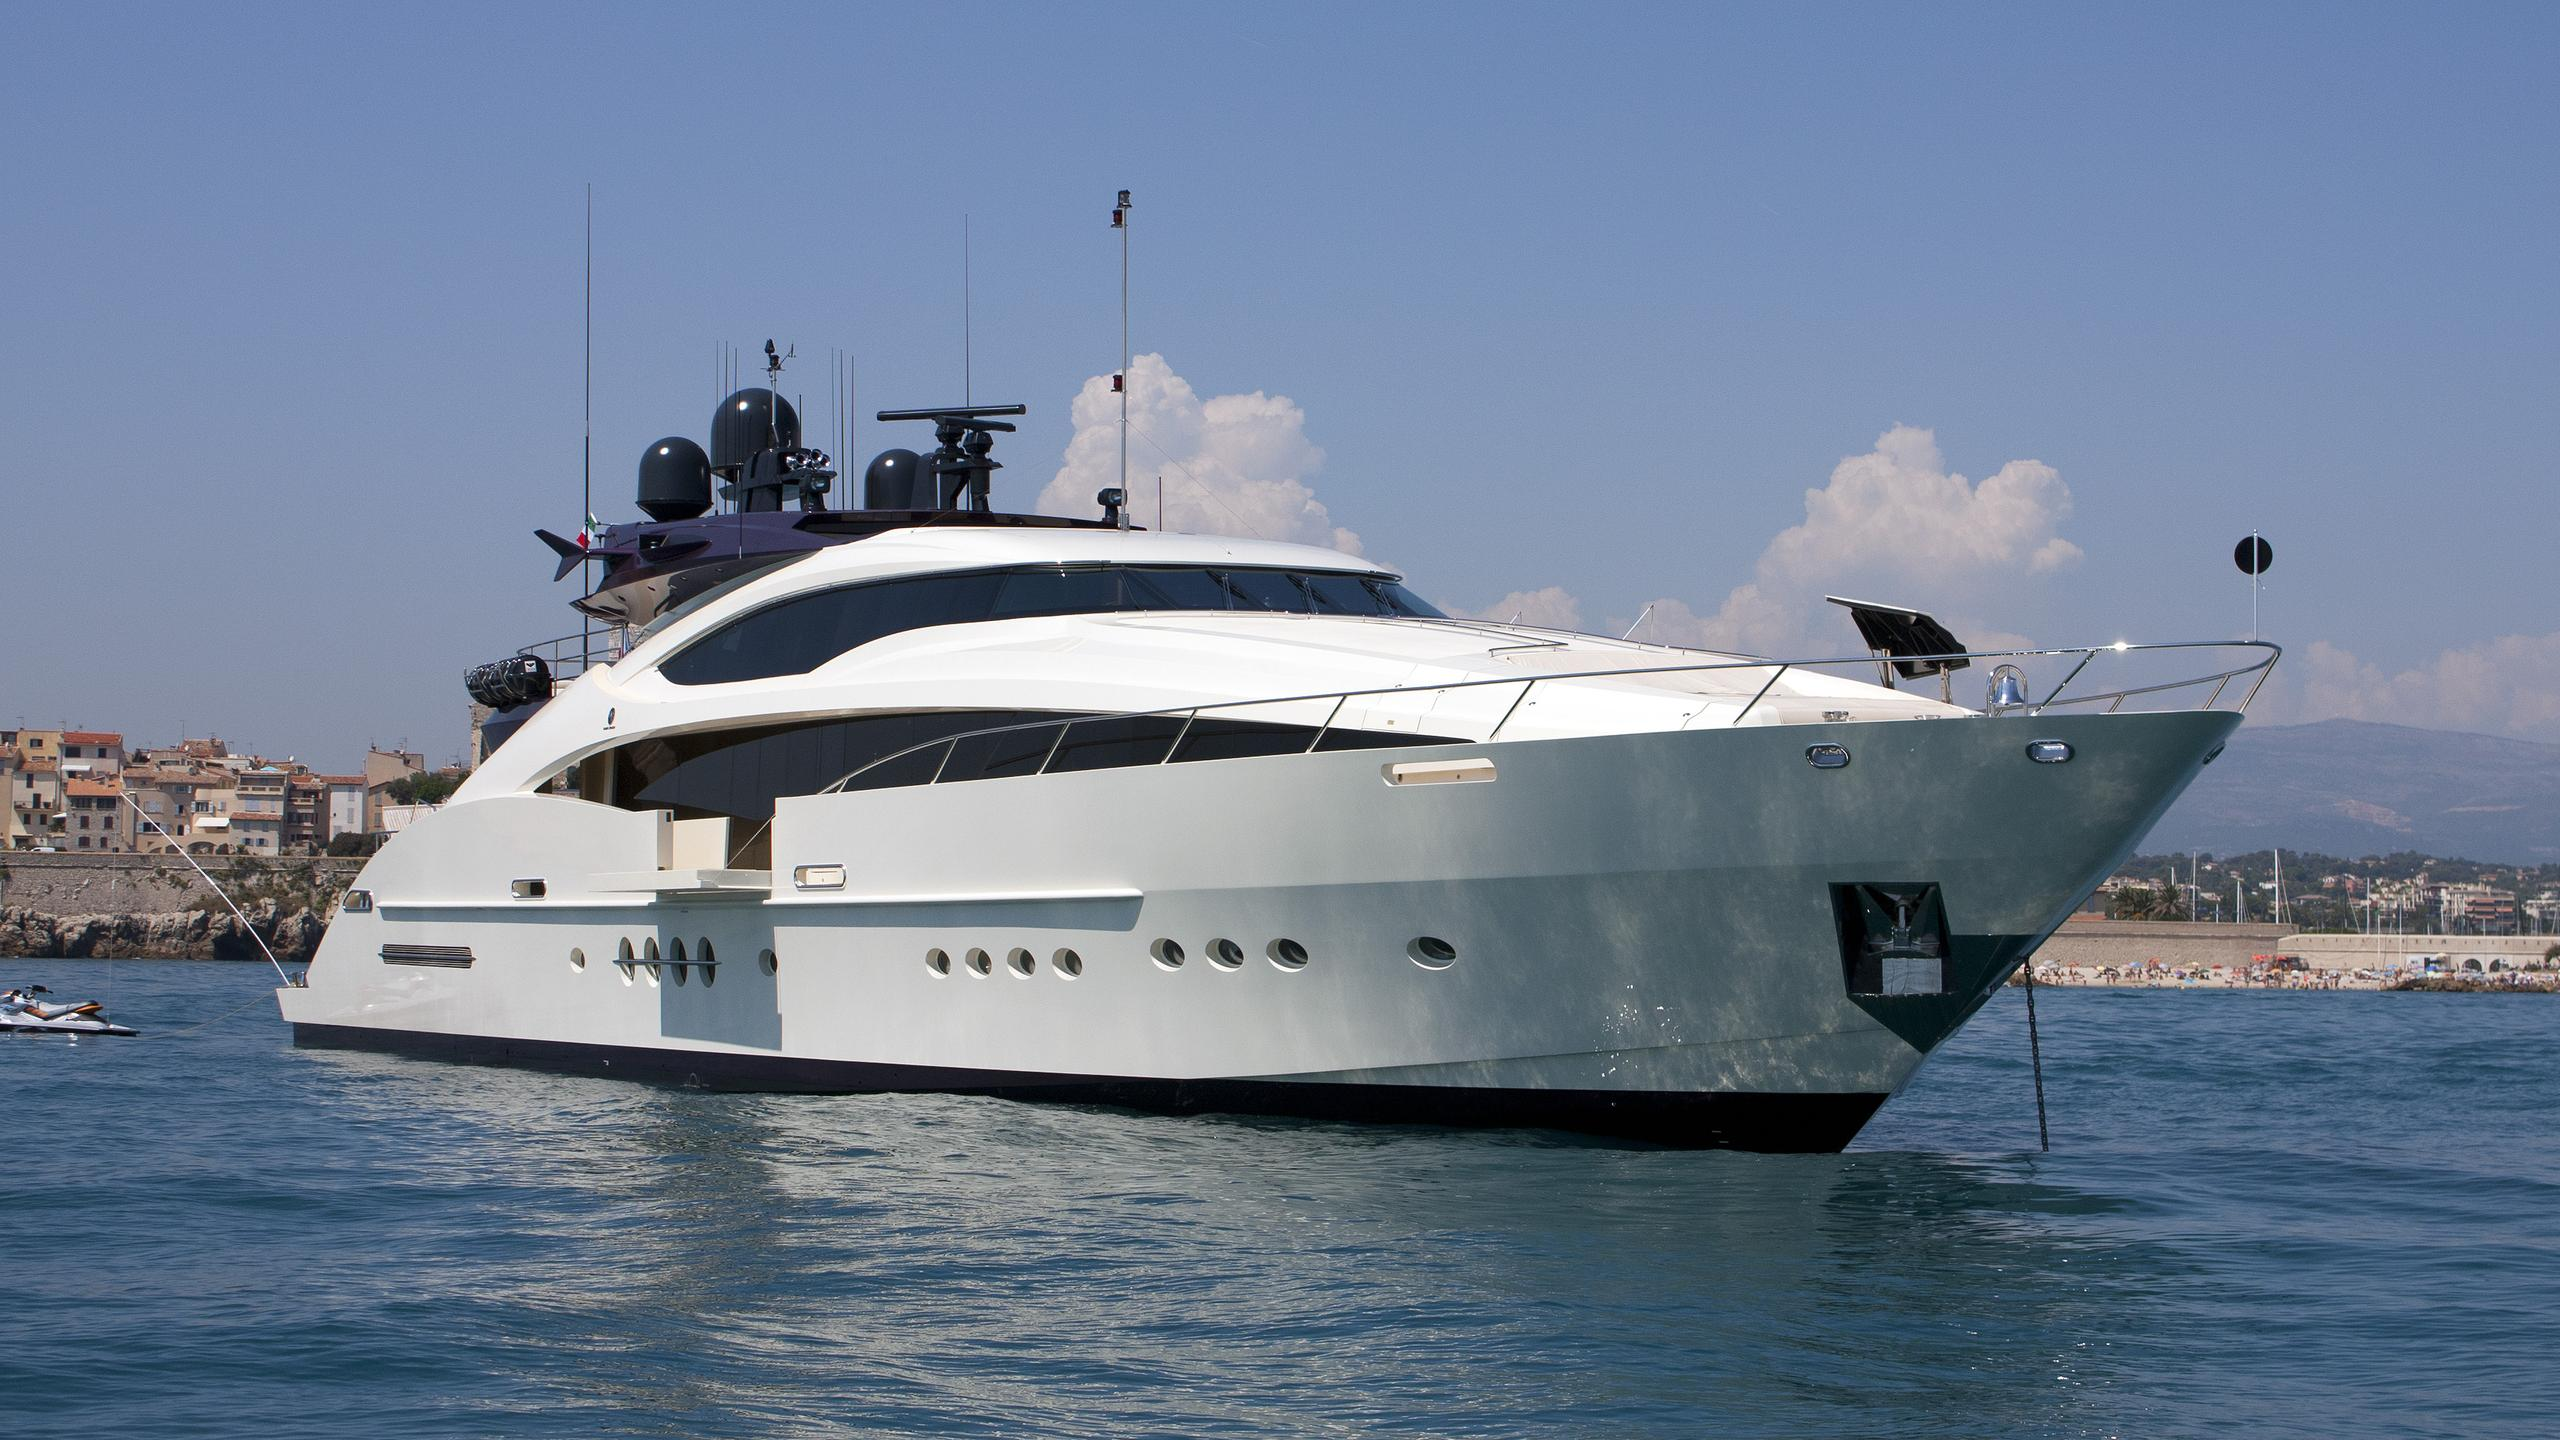 clifford-ii-motor-yacht-palmer-johnson-150-my-2008-46m-half-profile